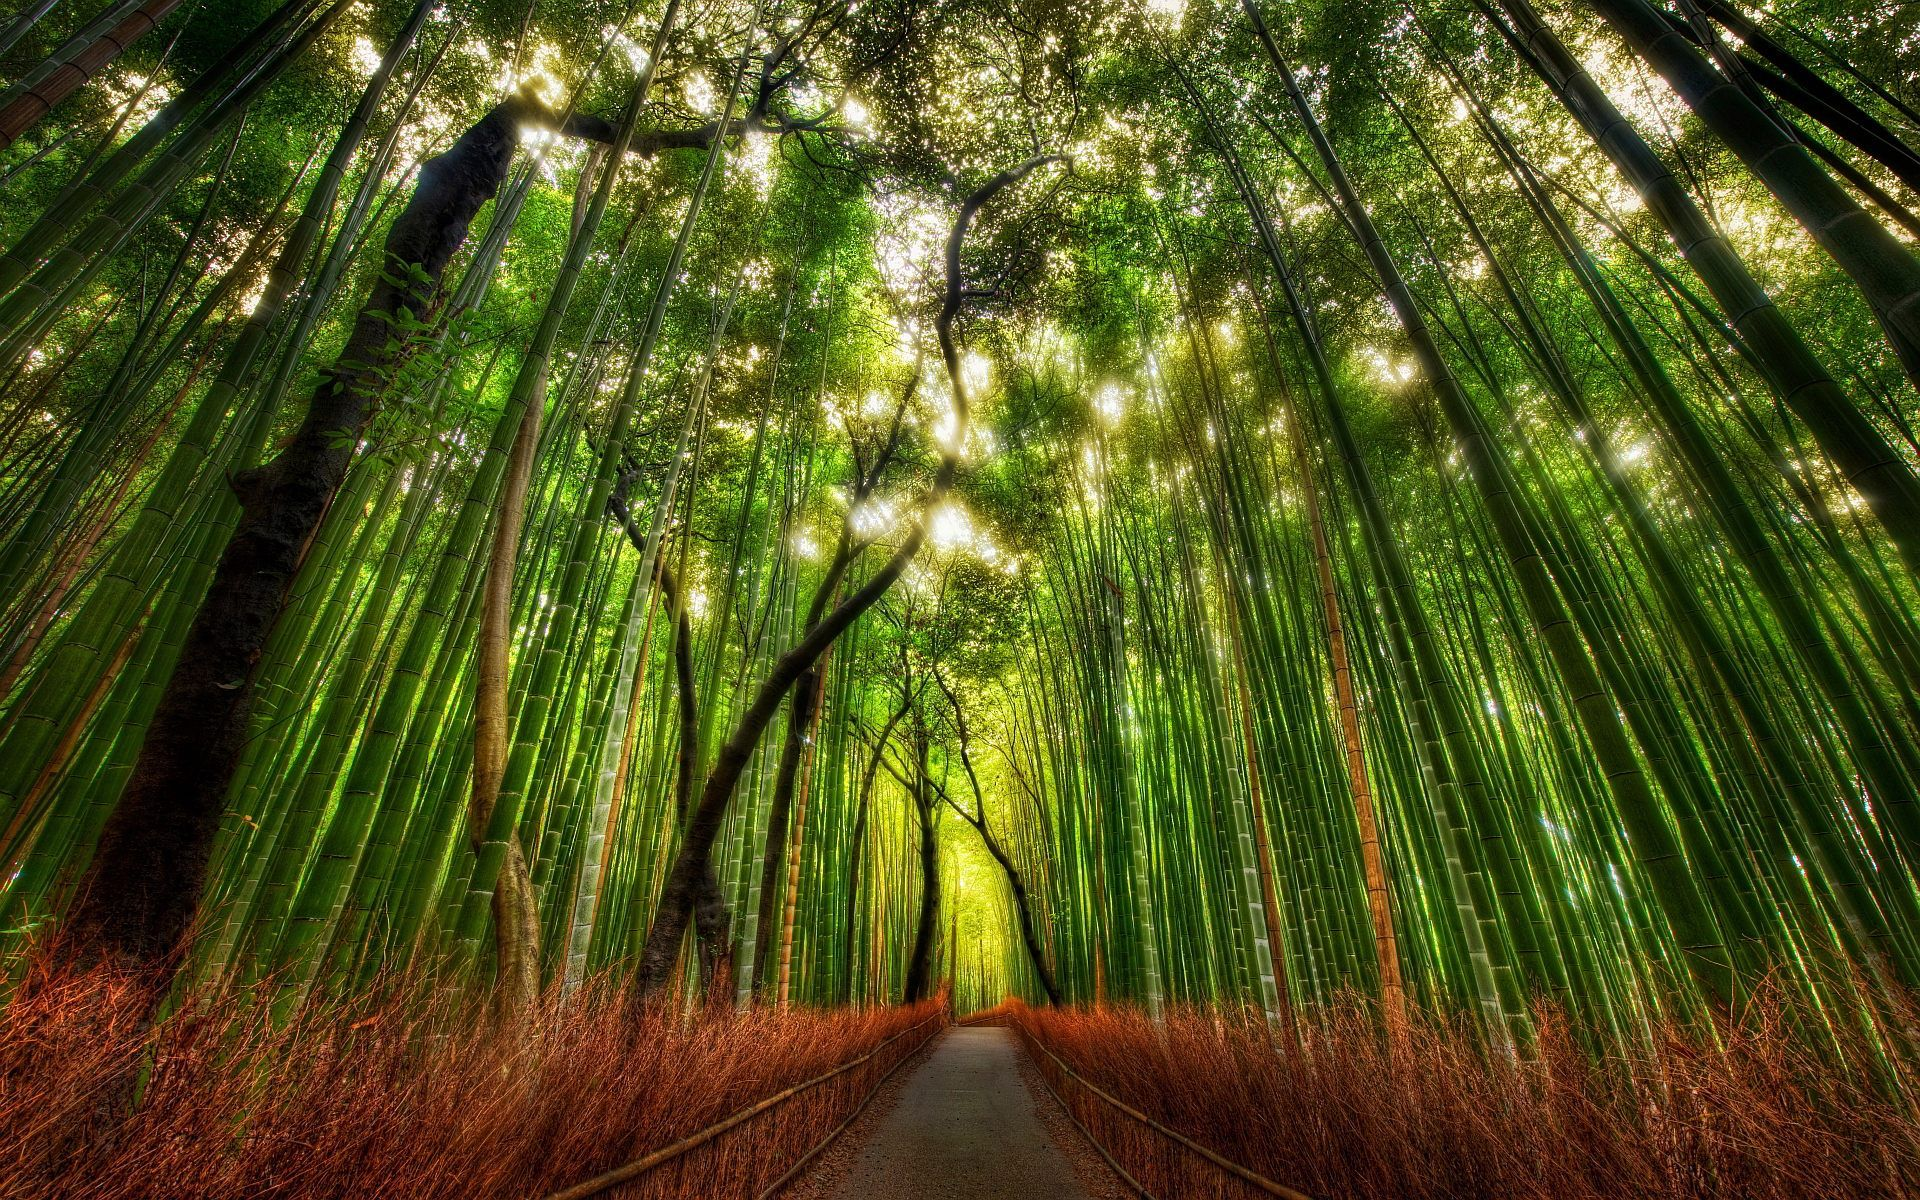 Bamboo Forest Kyoto Japan Hd Wallpaper Free Download Mural